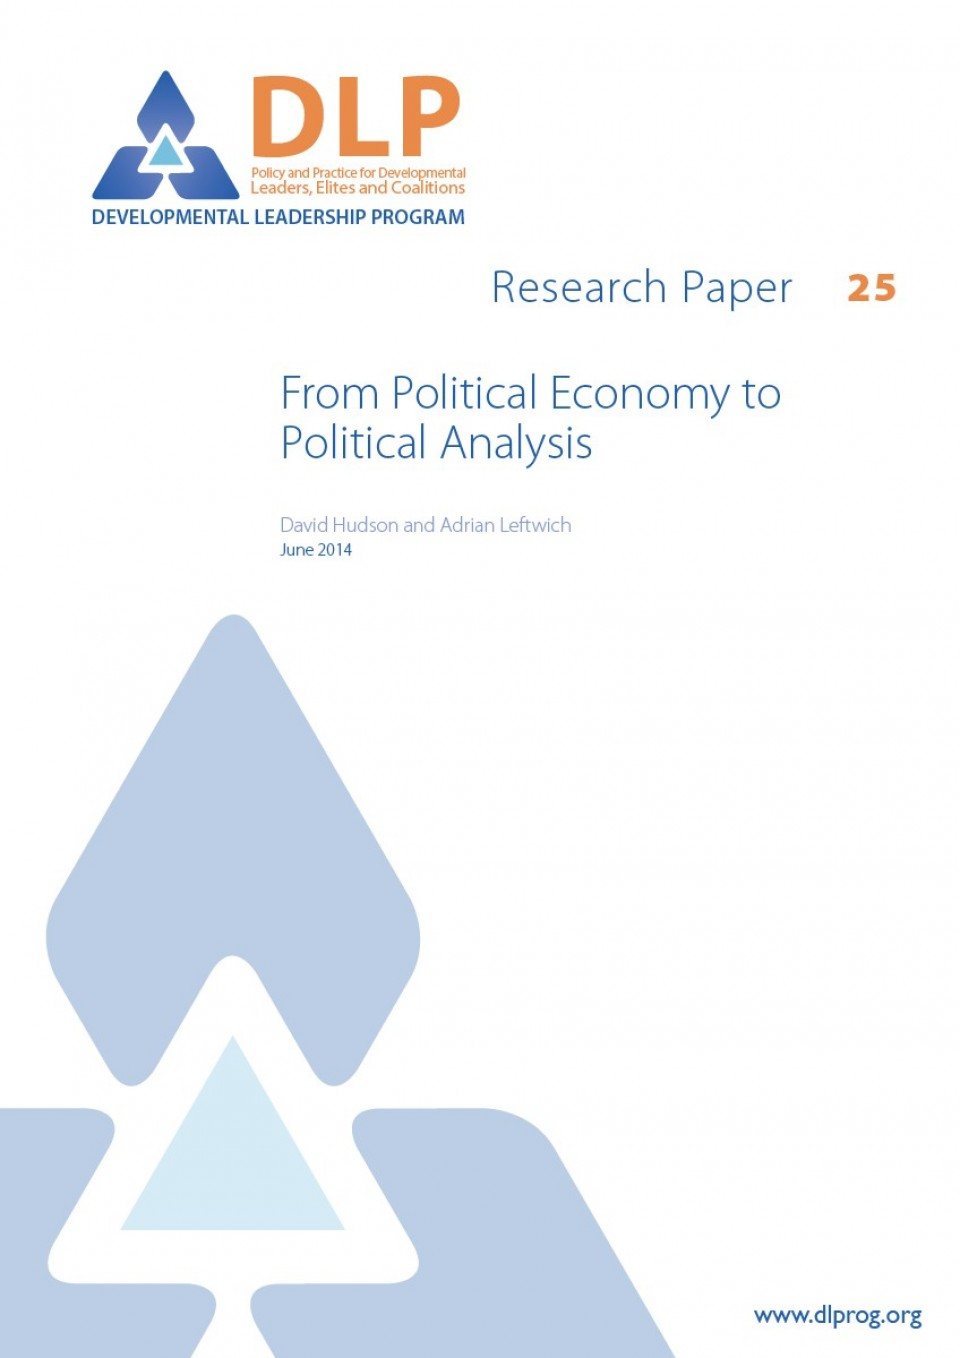 006 Political Economy Research Paper Topics From To Awesome Global International 960